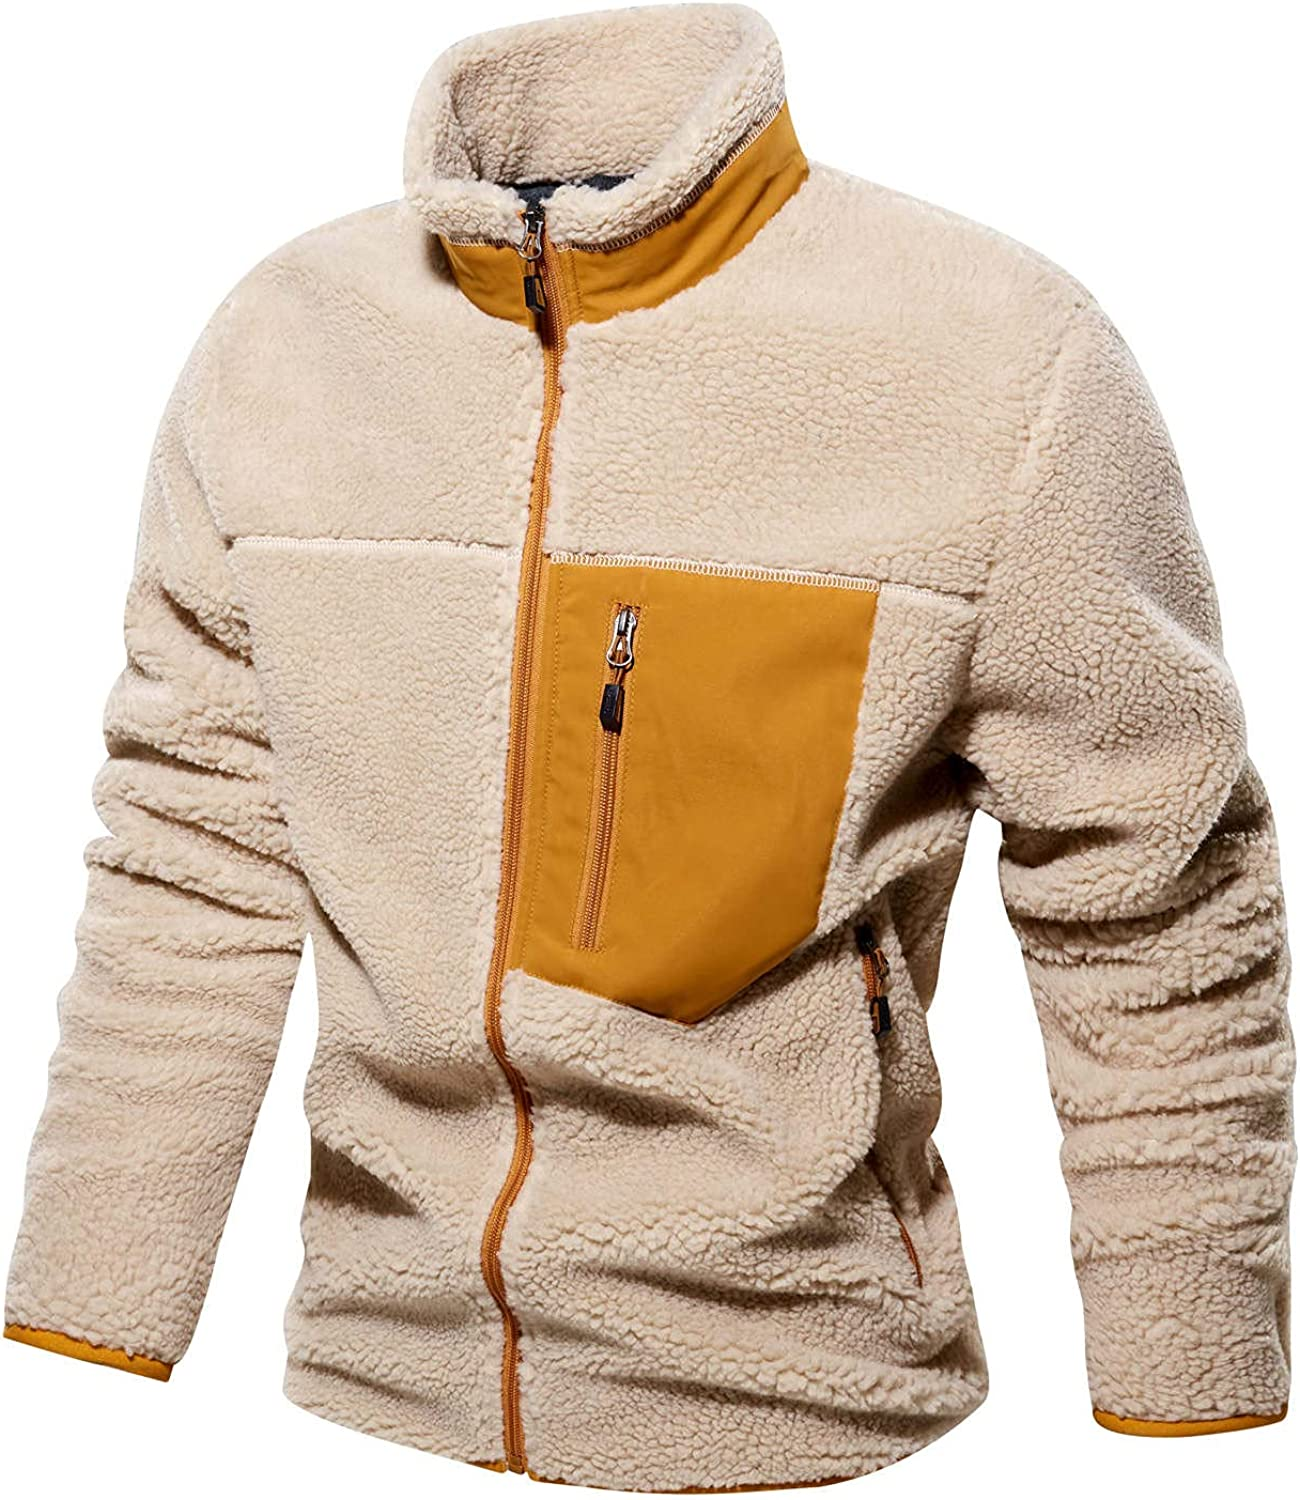 FIN86 Men's Casual Fashion Stitching AutumnWinter Jacket Our Sale item shop most popular